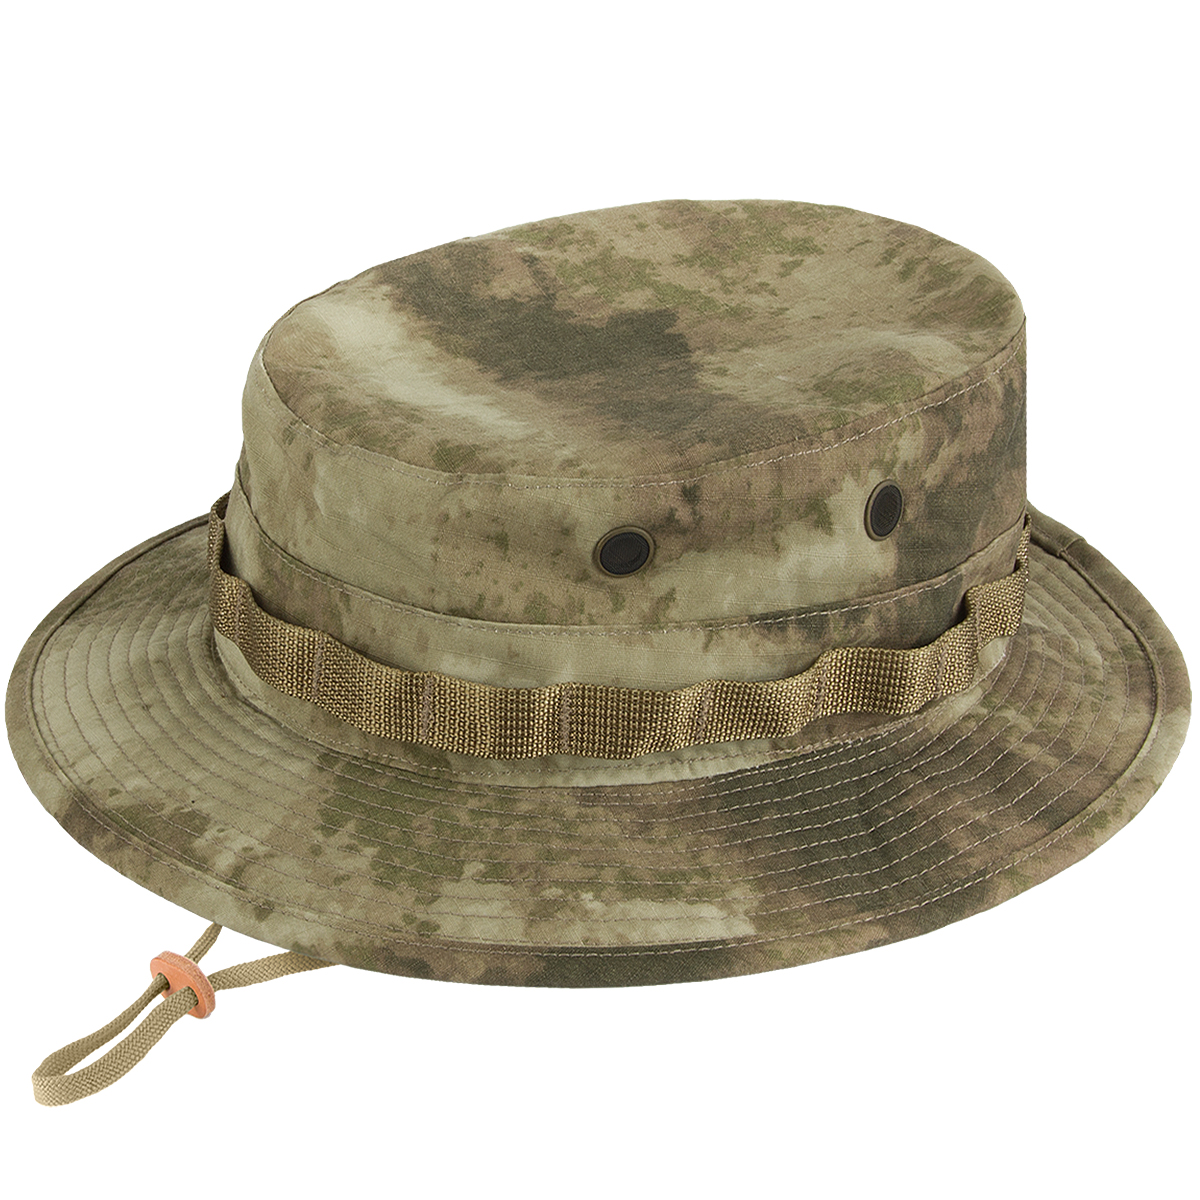 d58f59741ea21 Details about Propper Boonie Hat Giggle Army Paintball Hunting Airsoft  Fishing A-TACS AU Camo